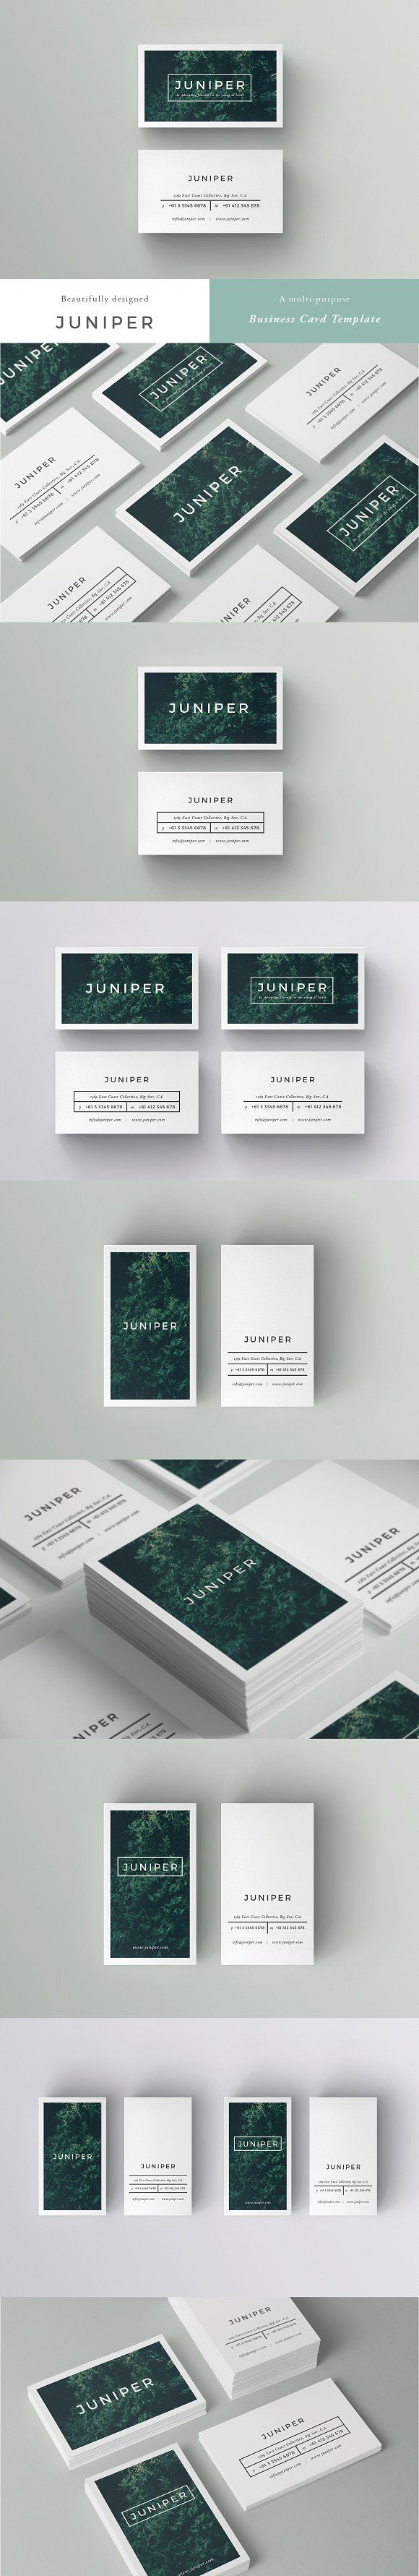 J U N I P E R Business Card Template - A beautiful multipurpose business card template, perfect for your next project and any brand identity. Clean, modern and fully customisable. Ideal for personal identity, professional branding, advertising, calling cards, launches, events, invites and more. Landscape AND portrait options. 4 design variations to choose from all up, feel free to mix and match fronts and backs. by 46&2 Collective. $10 #affiliatelink